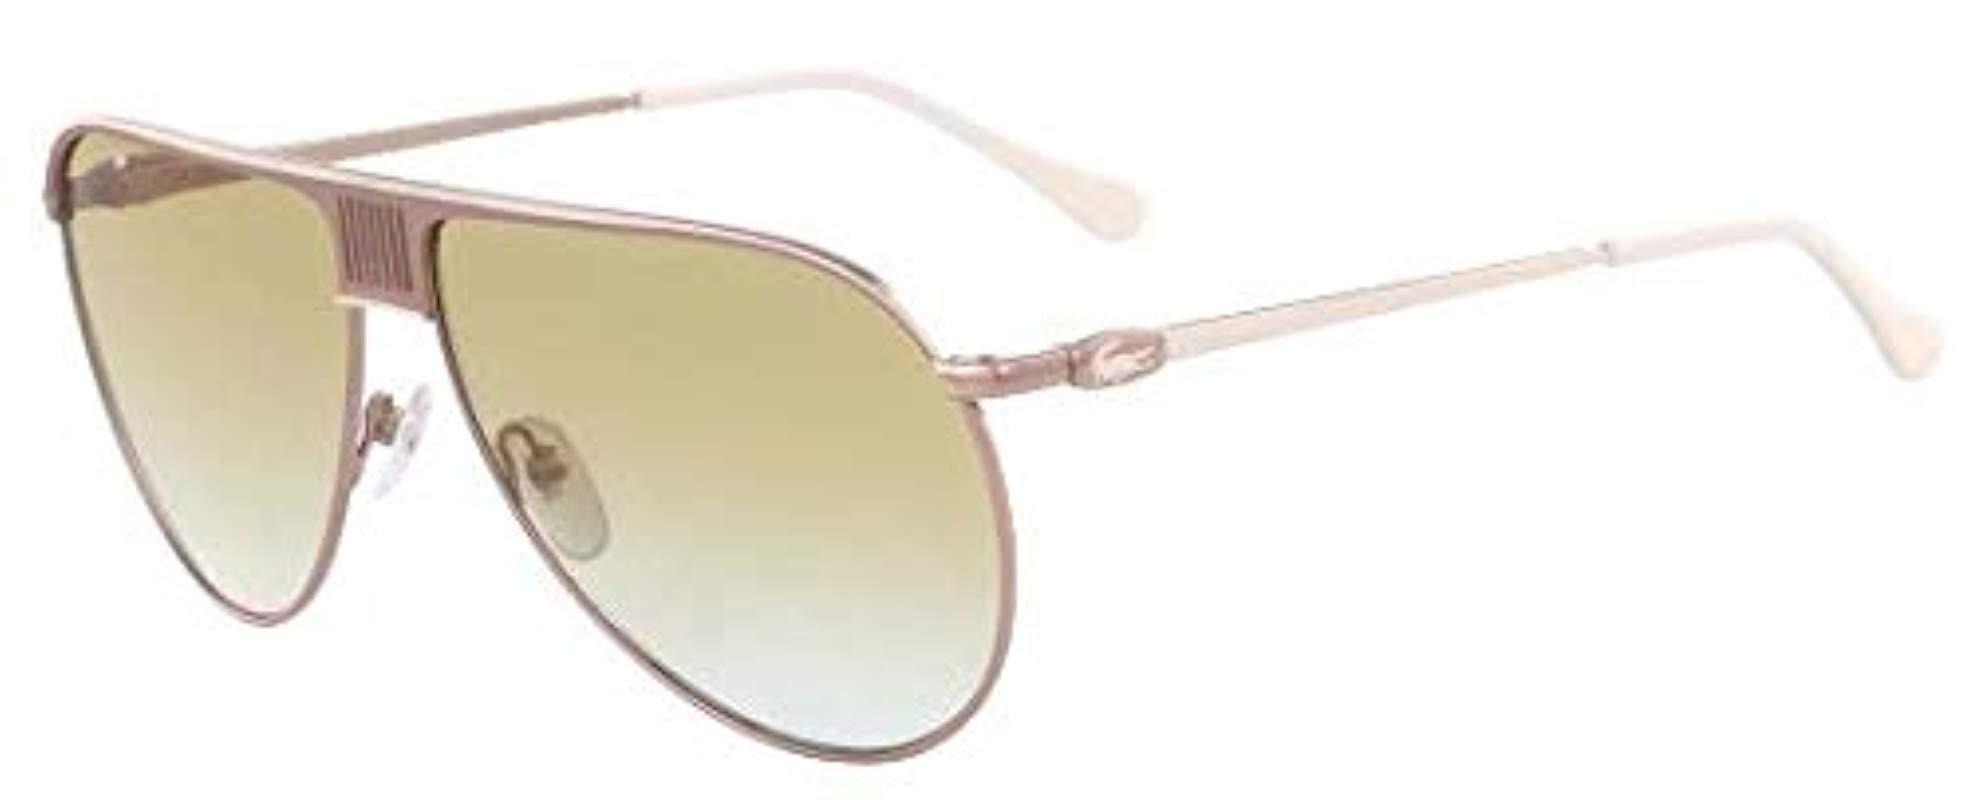 1c2bcf08e0c Lyst - Lacoste L200s Aviator Sunglasses Gold Ivory 62 Mm in White ...